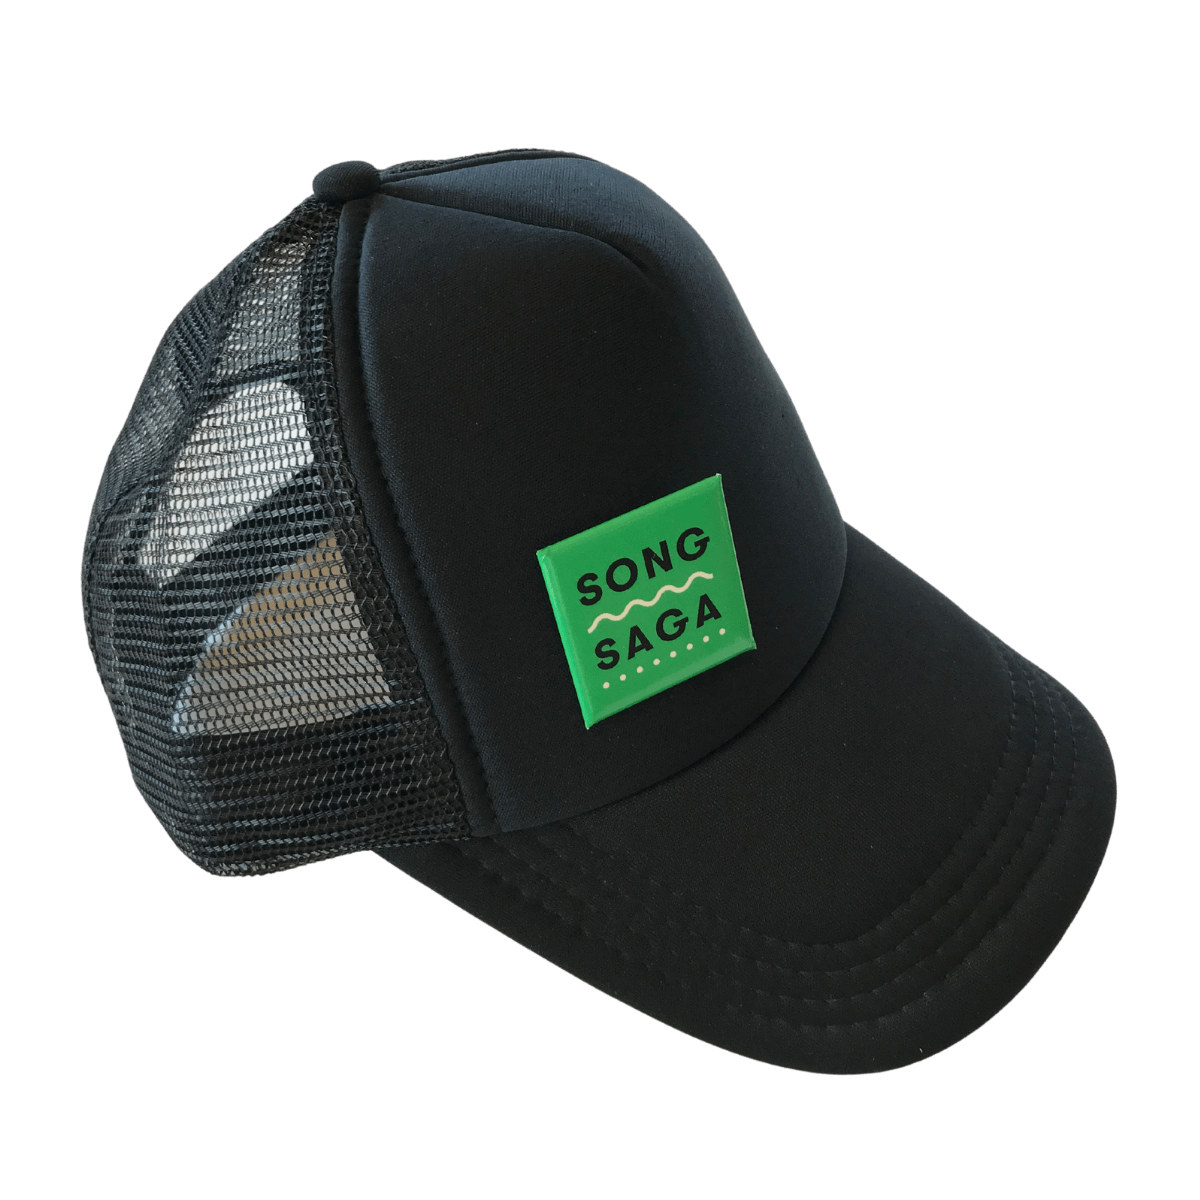 Song Saga Game, Music Game, Story Game, Party Game, Best Party Games, SongSaga, Green Box that Rocks, Card Game, Cards, You Rock Game, Conversation Starters Game, Spotify Game, Song Saga Hat, Trucker hat, song saga trucker cap, baseball hat, baseball cap, mesh hat.